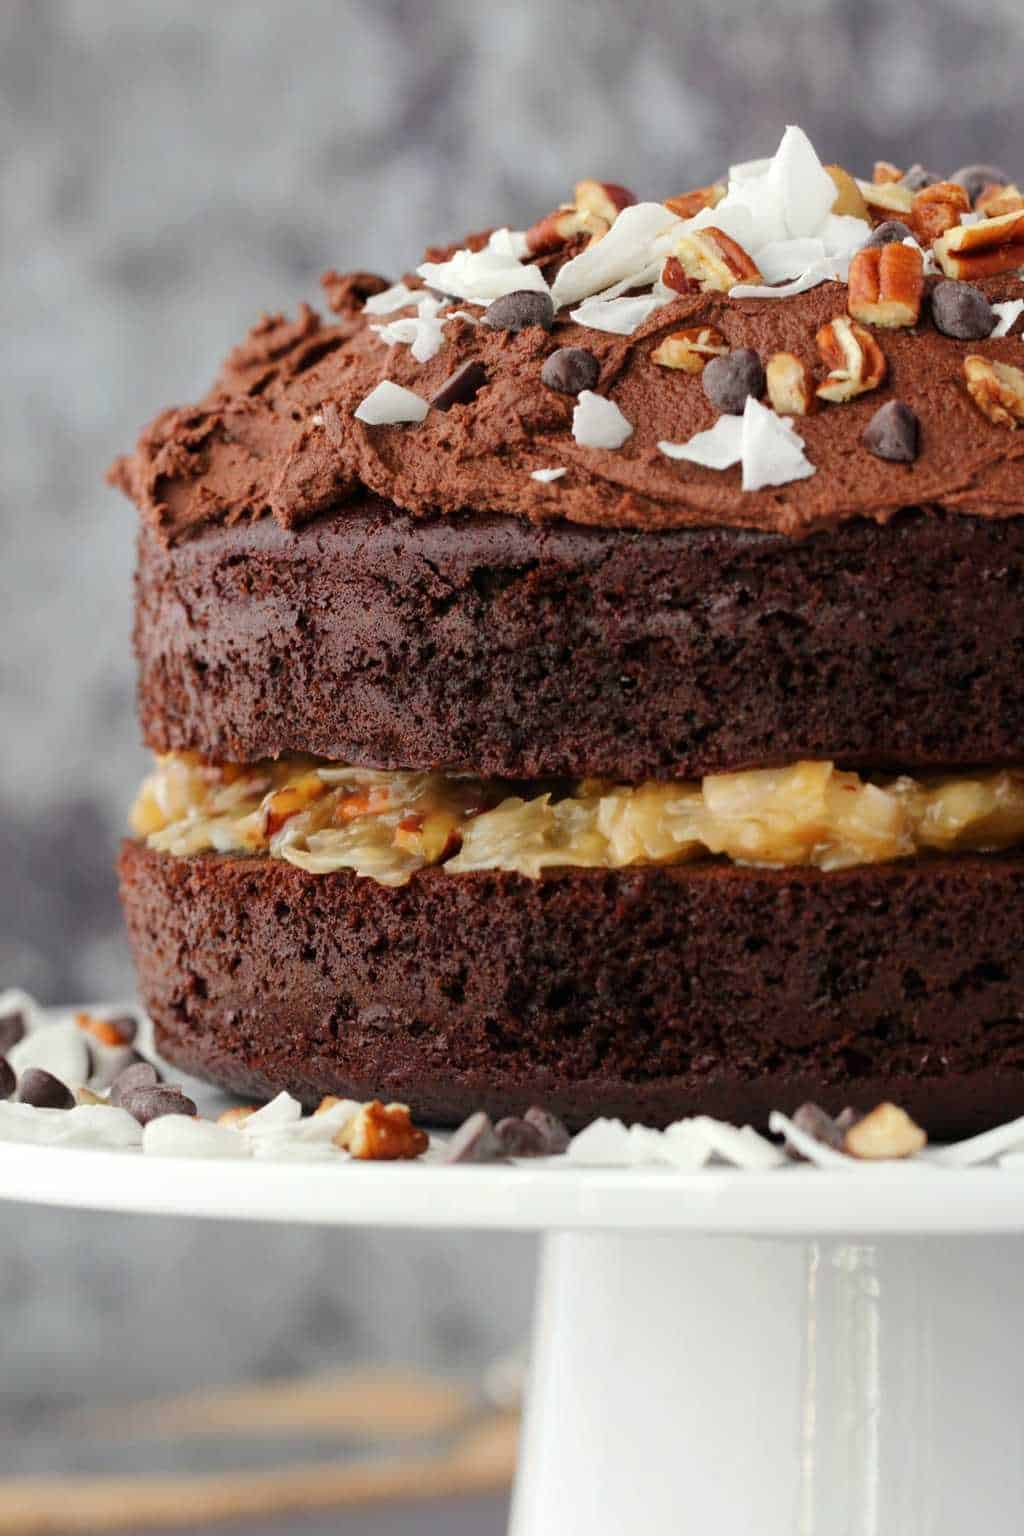 Vegan german chocolate cake decorated with coconut flakes, chopped pecans and chocolate chips on a white cake stand.